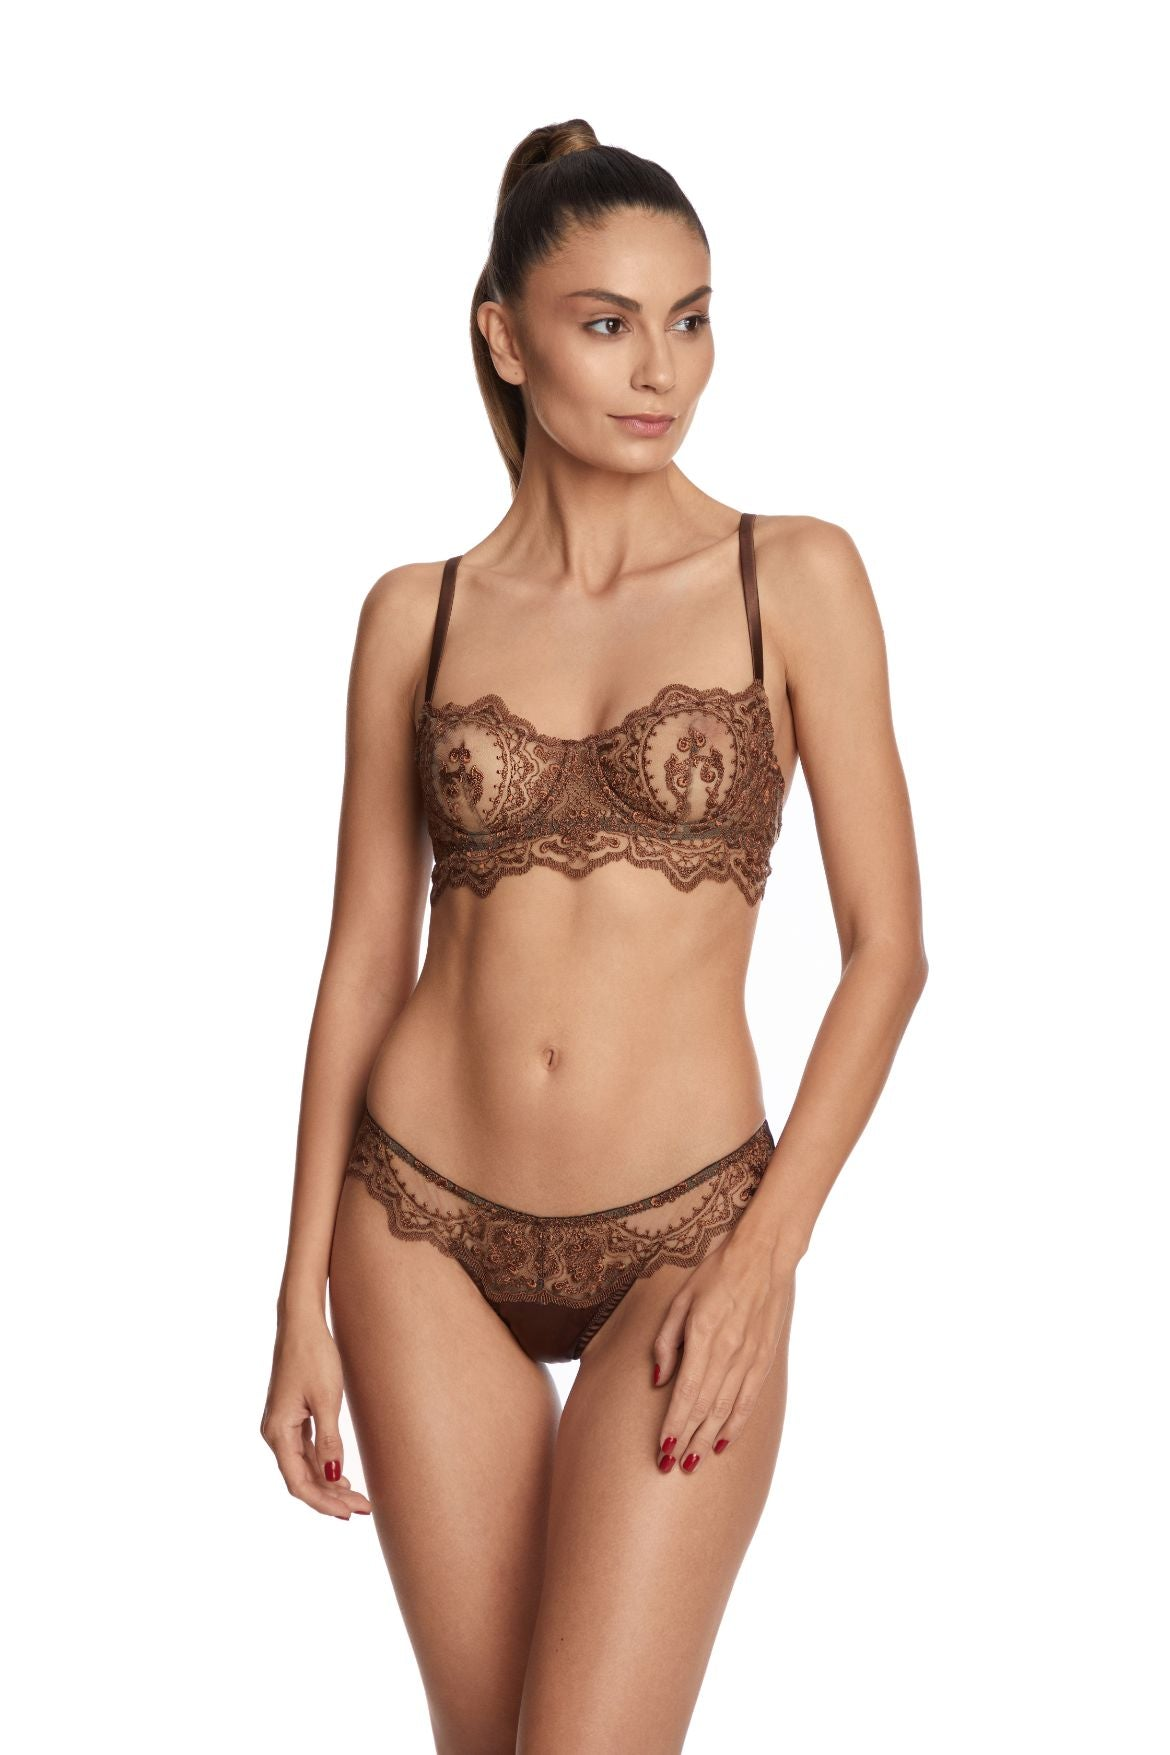 Le Désir Balconette Bra in Chocolate